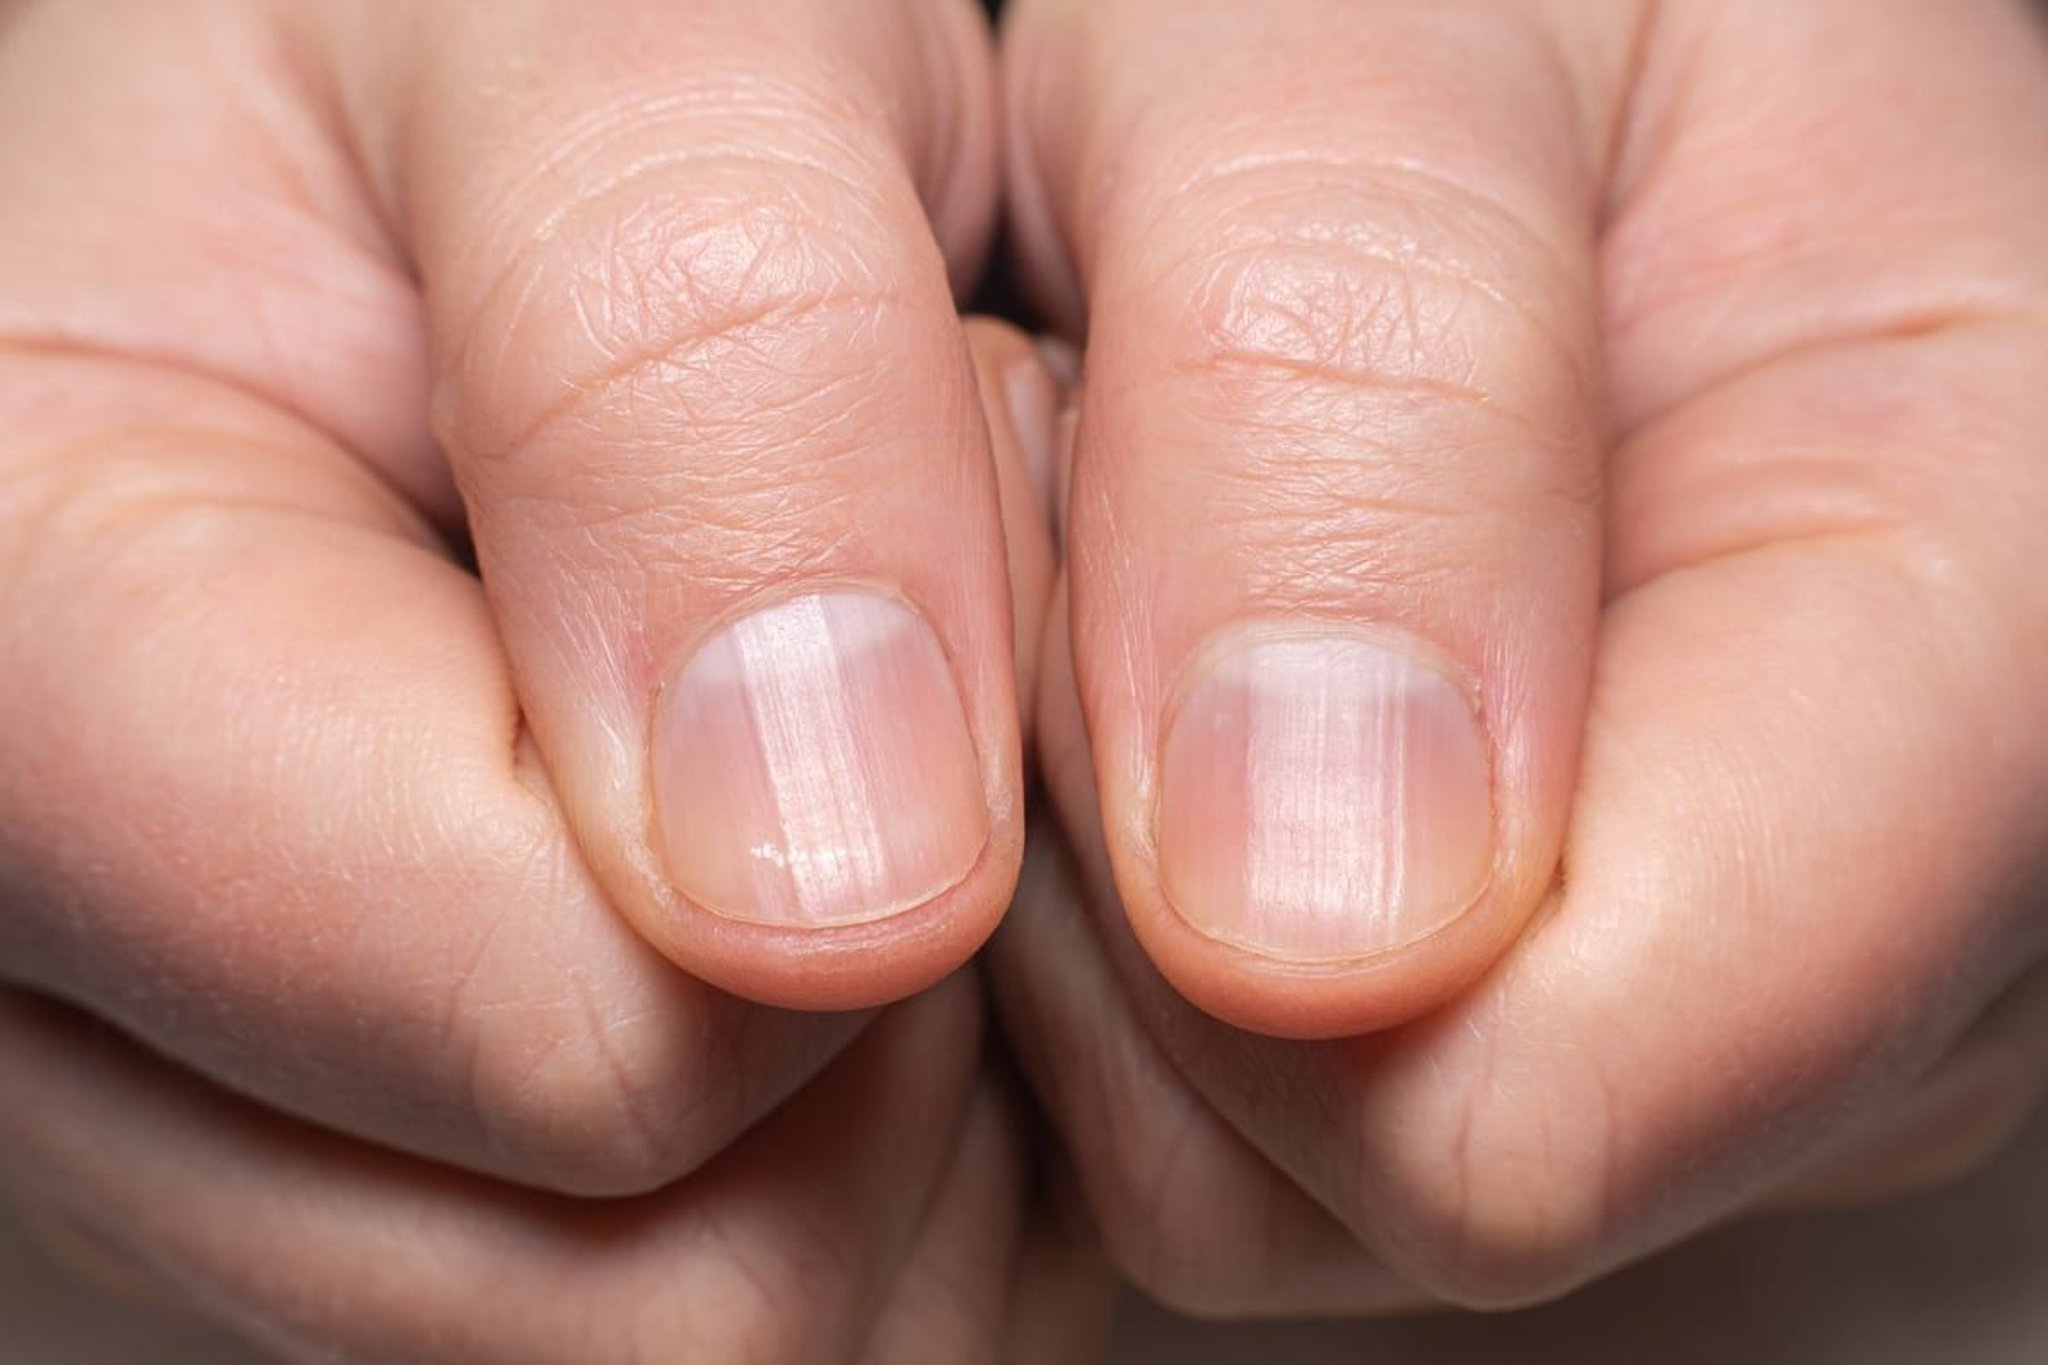 'Covid nails' could be a sign of previous infection - the key symptoms to look for